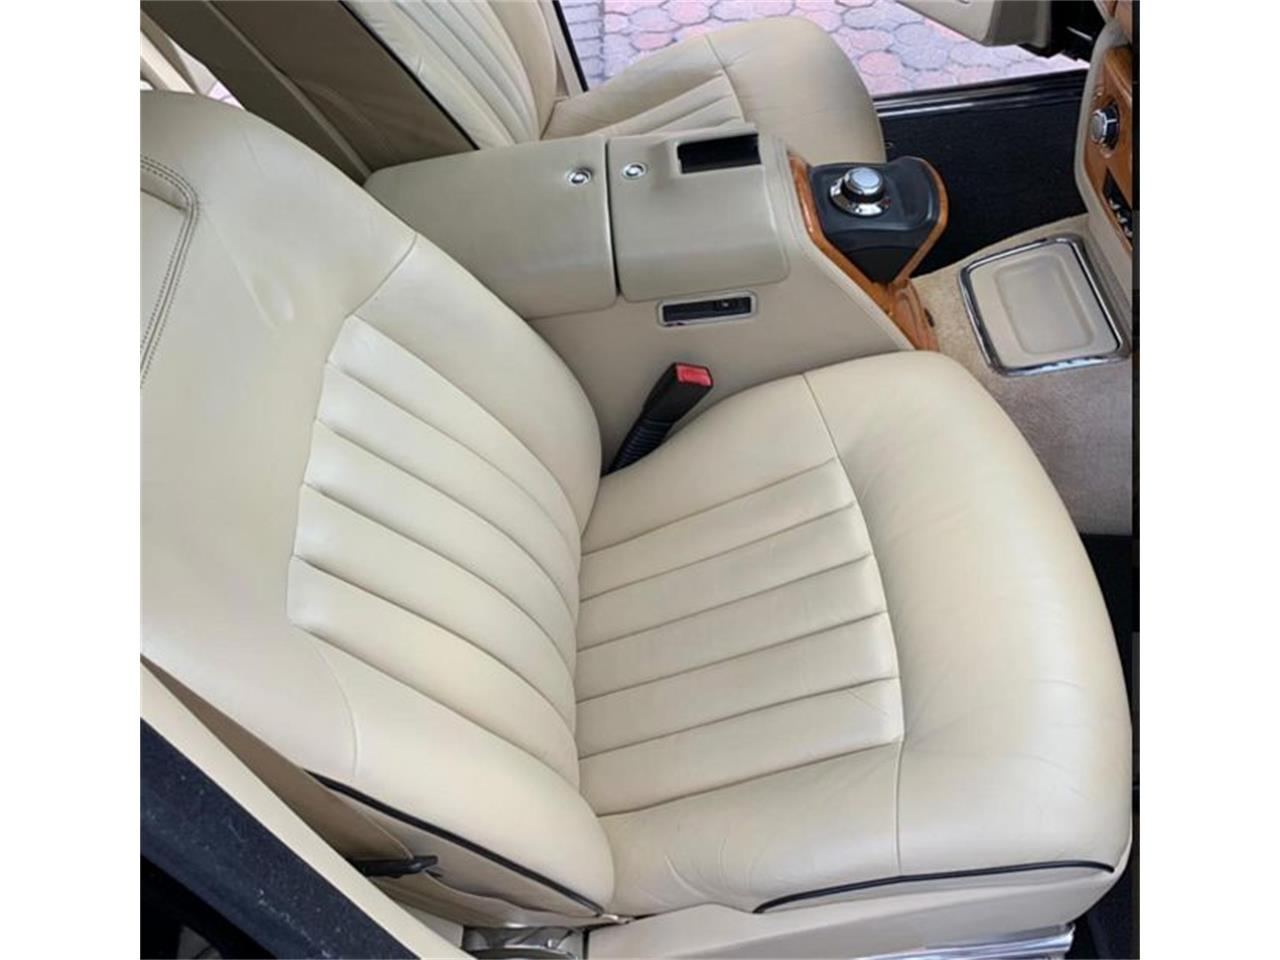 2006 Rolls-Royce Phantom for sale in Valley Park, MO – photo 40